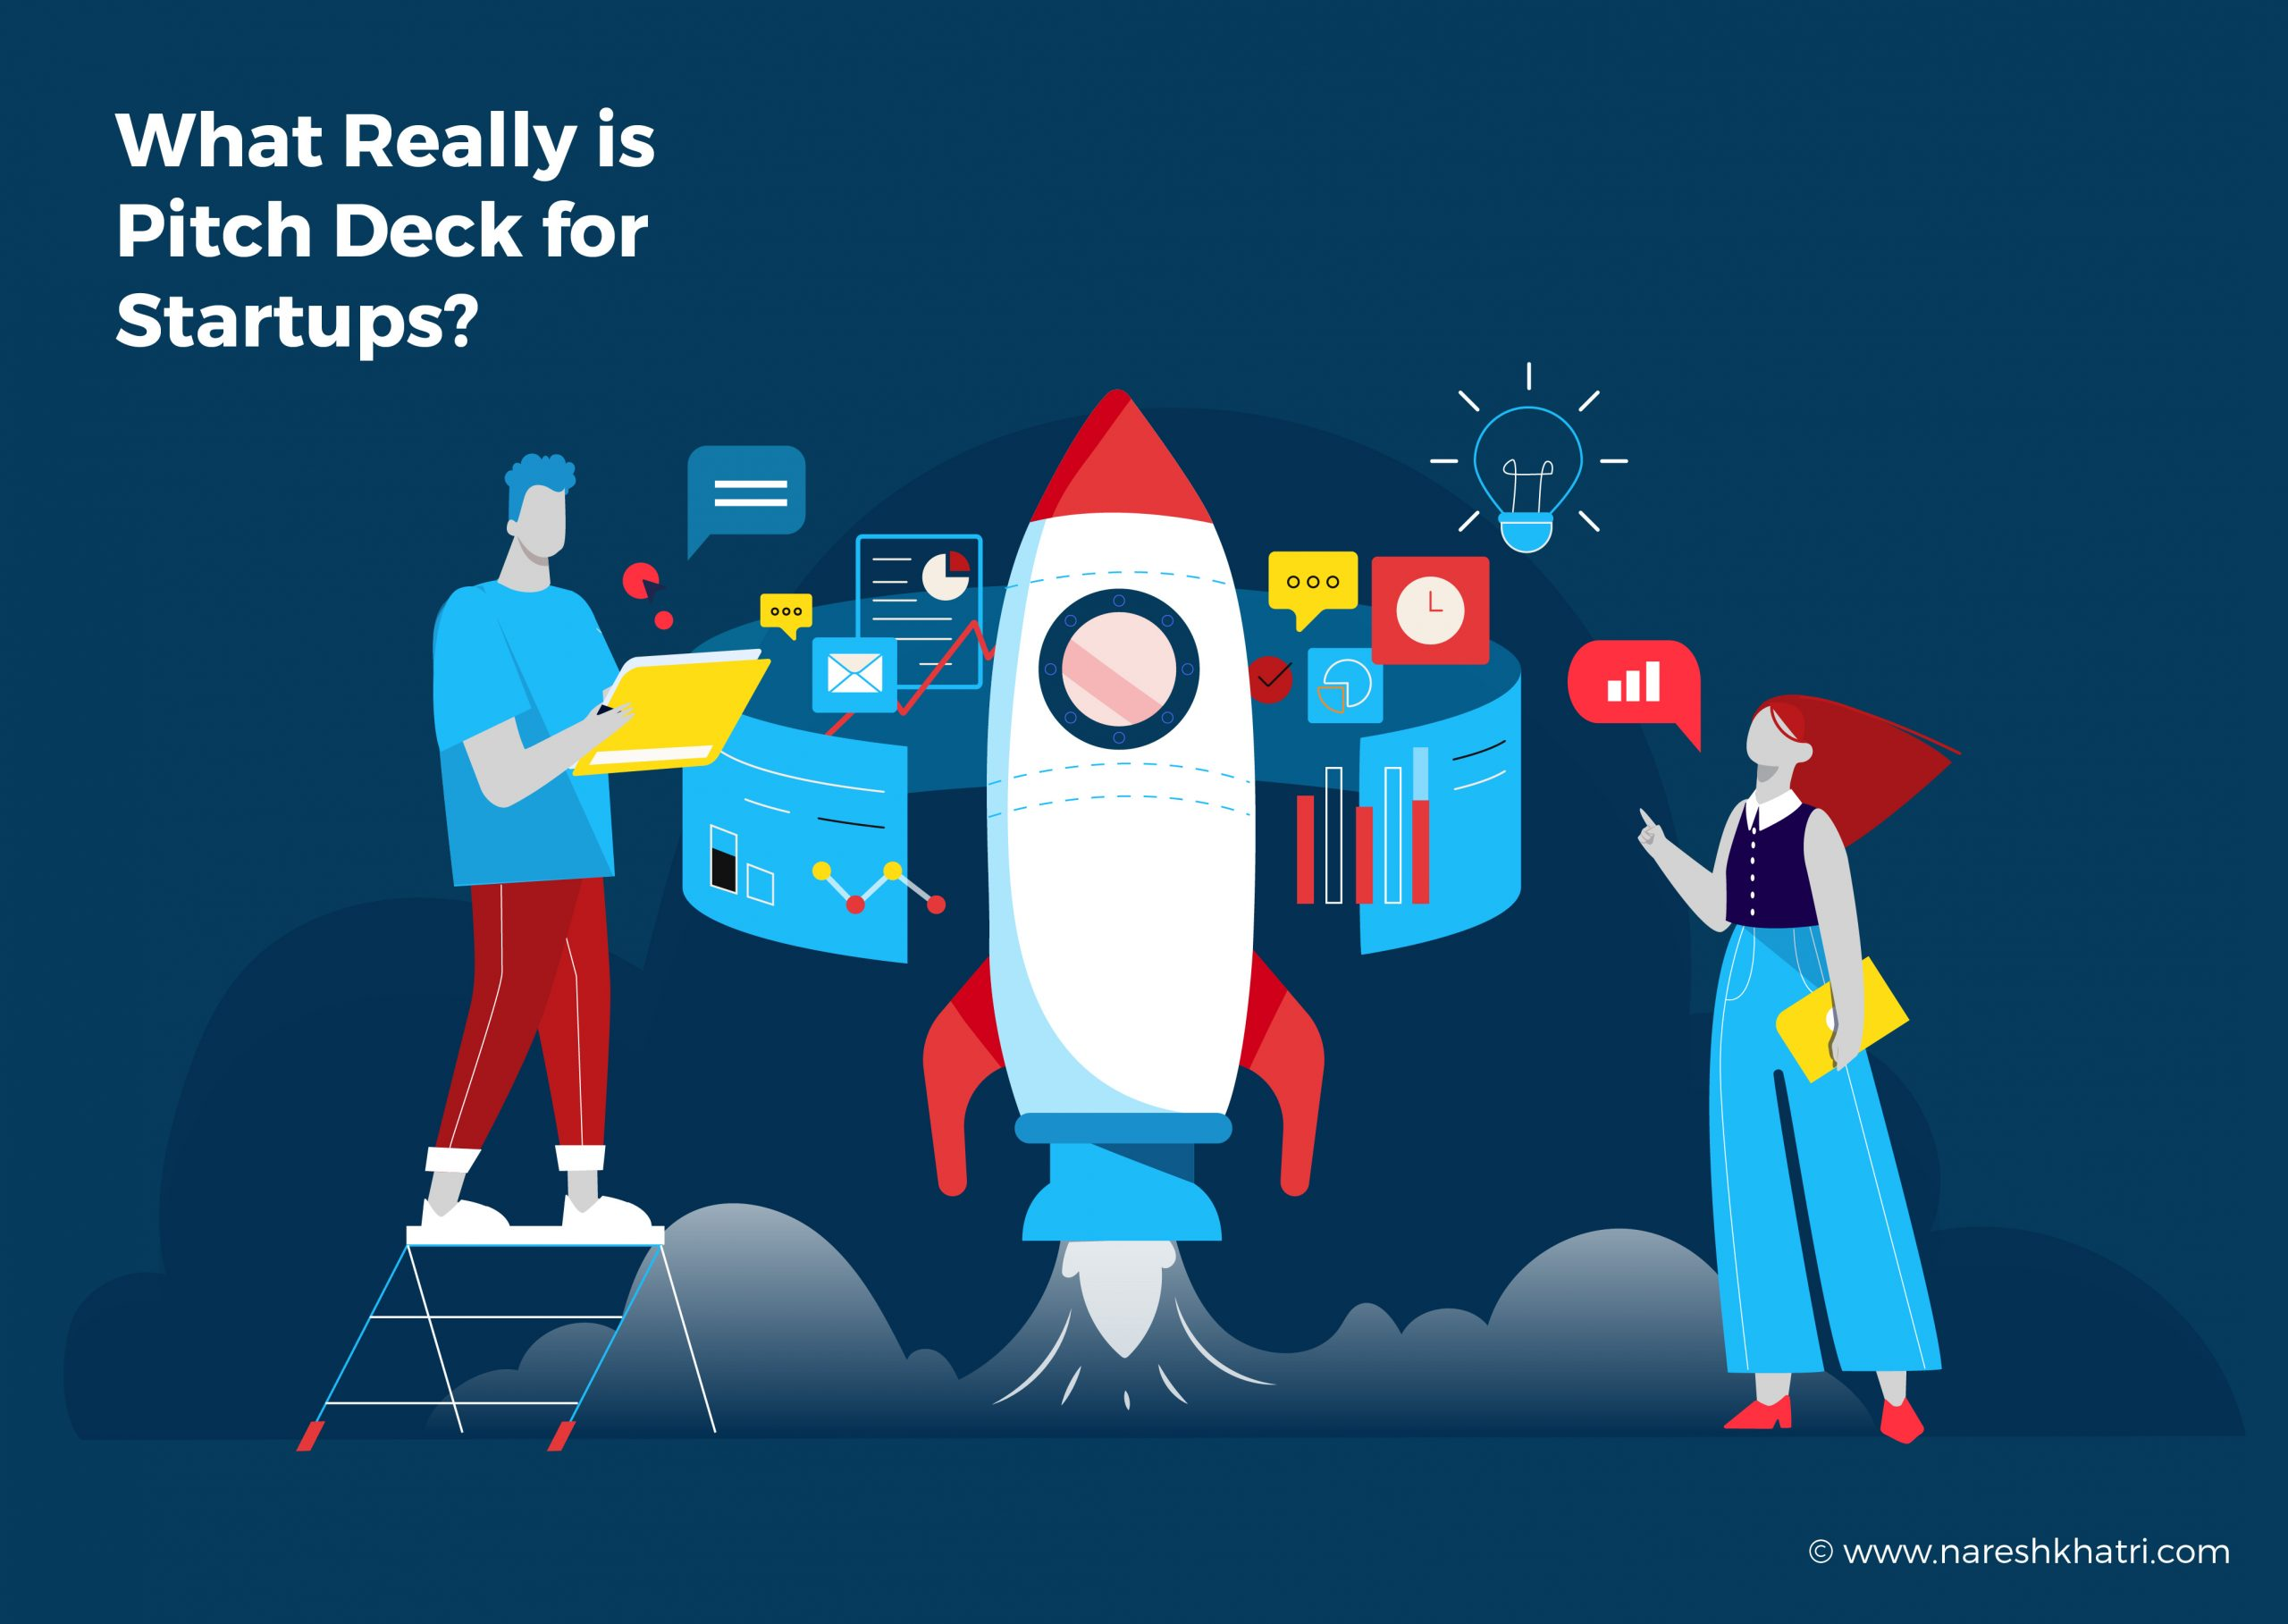 What Really is Pitch Deck for Startups?